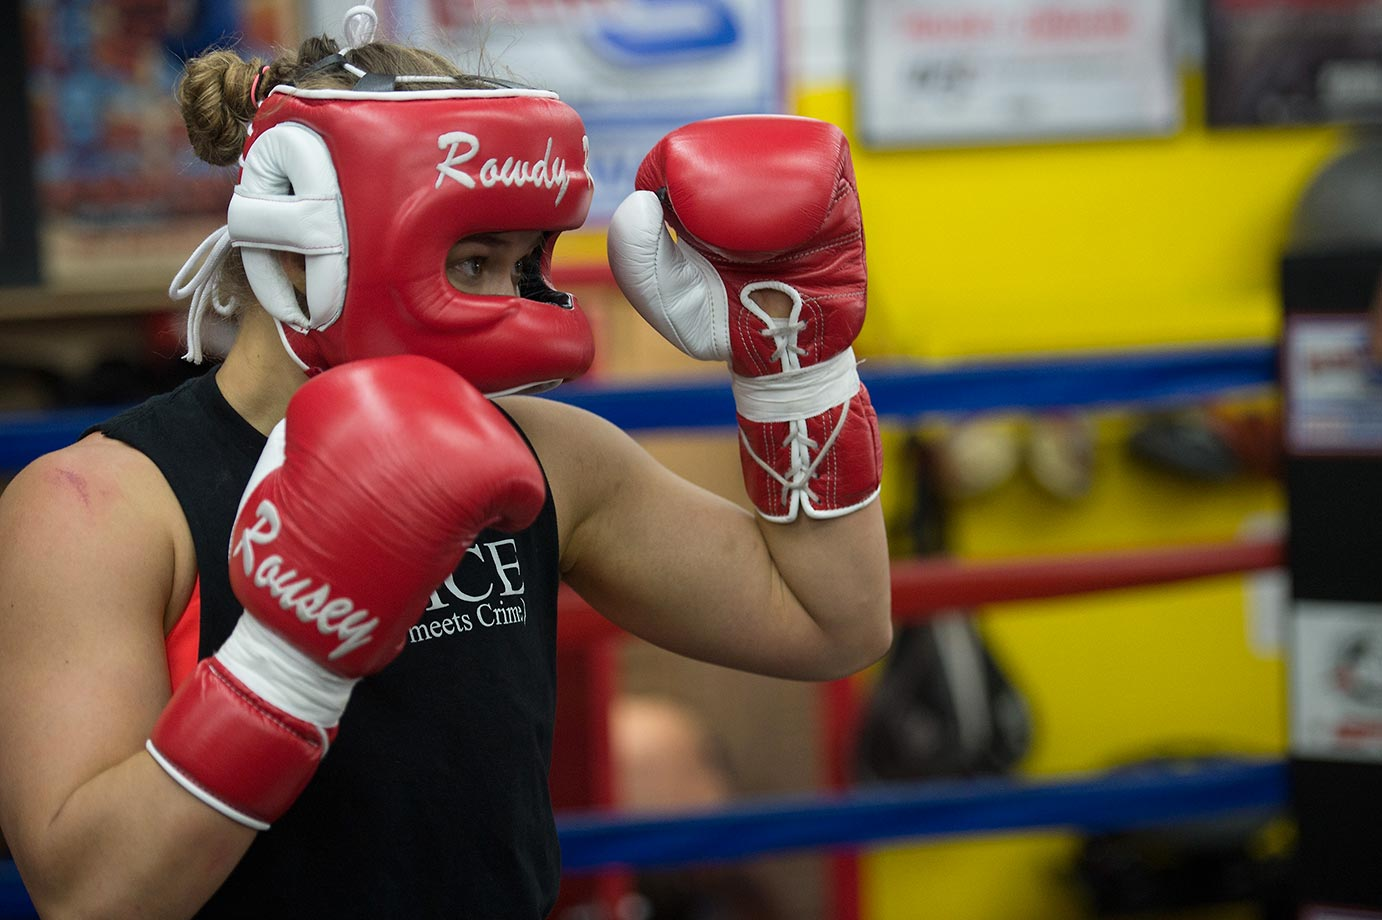 Ronda Rousey spars with a partner during a media training session.